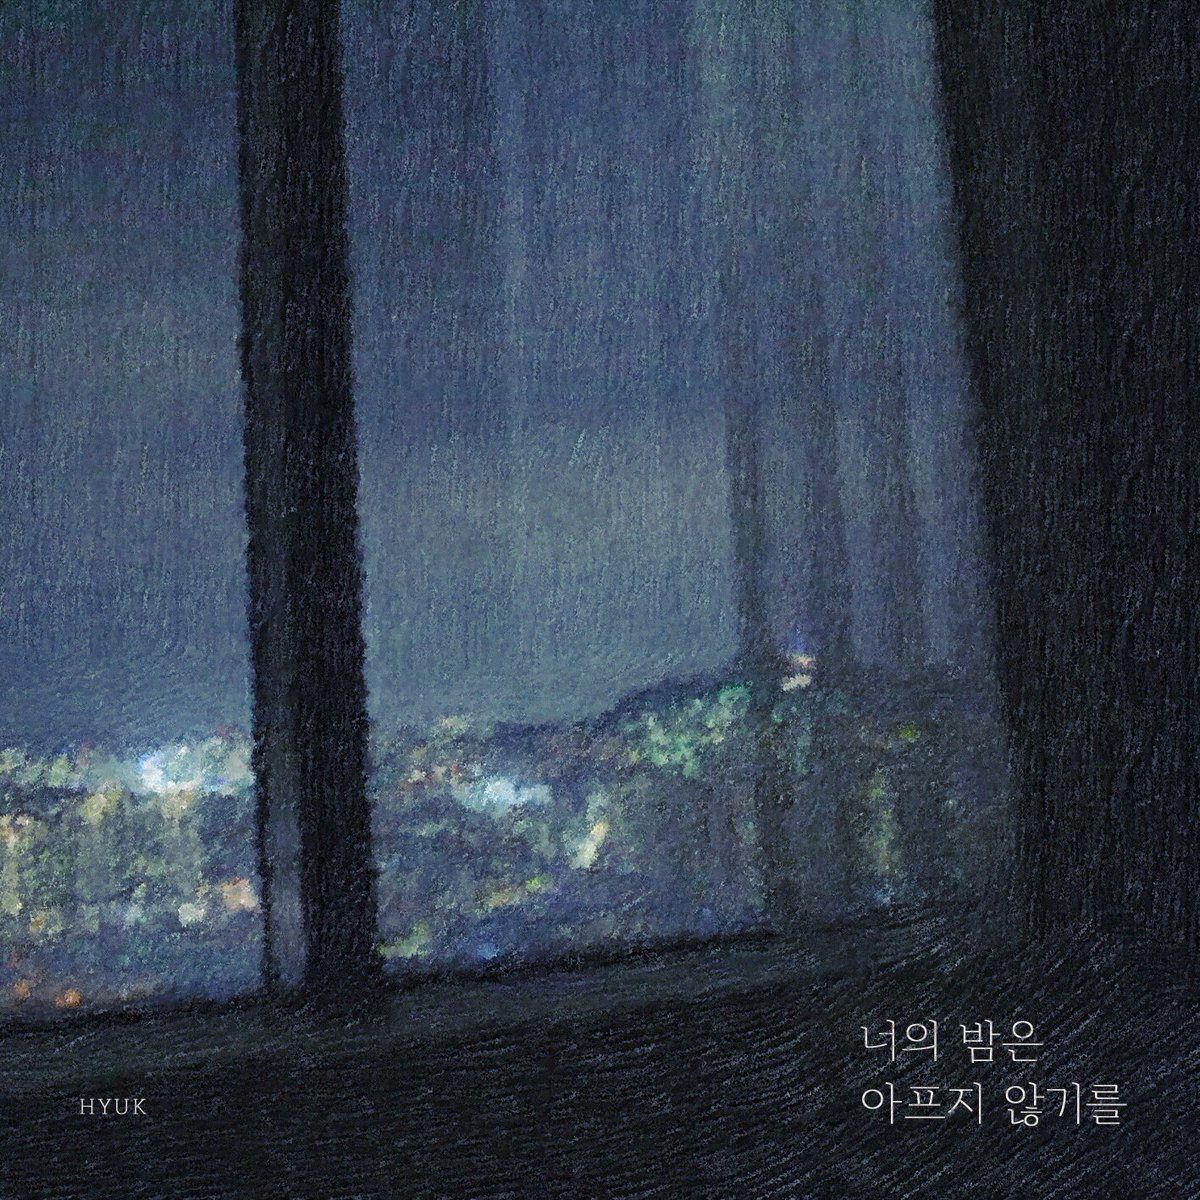 This is ROVIX. Four Seasons of HYUK. Agent #HYUKs <A long night> with the mood of autumn has been released. Show me your ST★RLIGHT power by streaming⭐downloading! [Start the RT operation! Over and out.] #VIXX #HYUK #HAN_SANG_HYUK #A_long_night